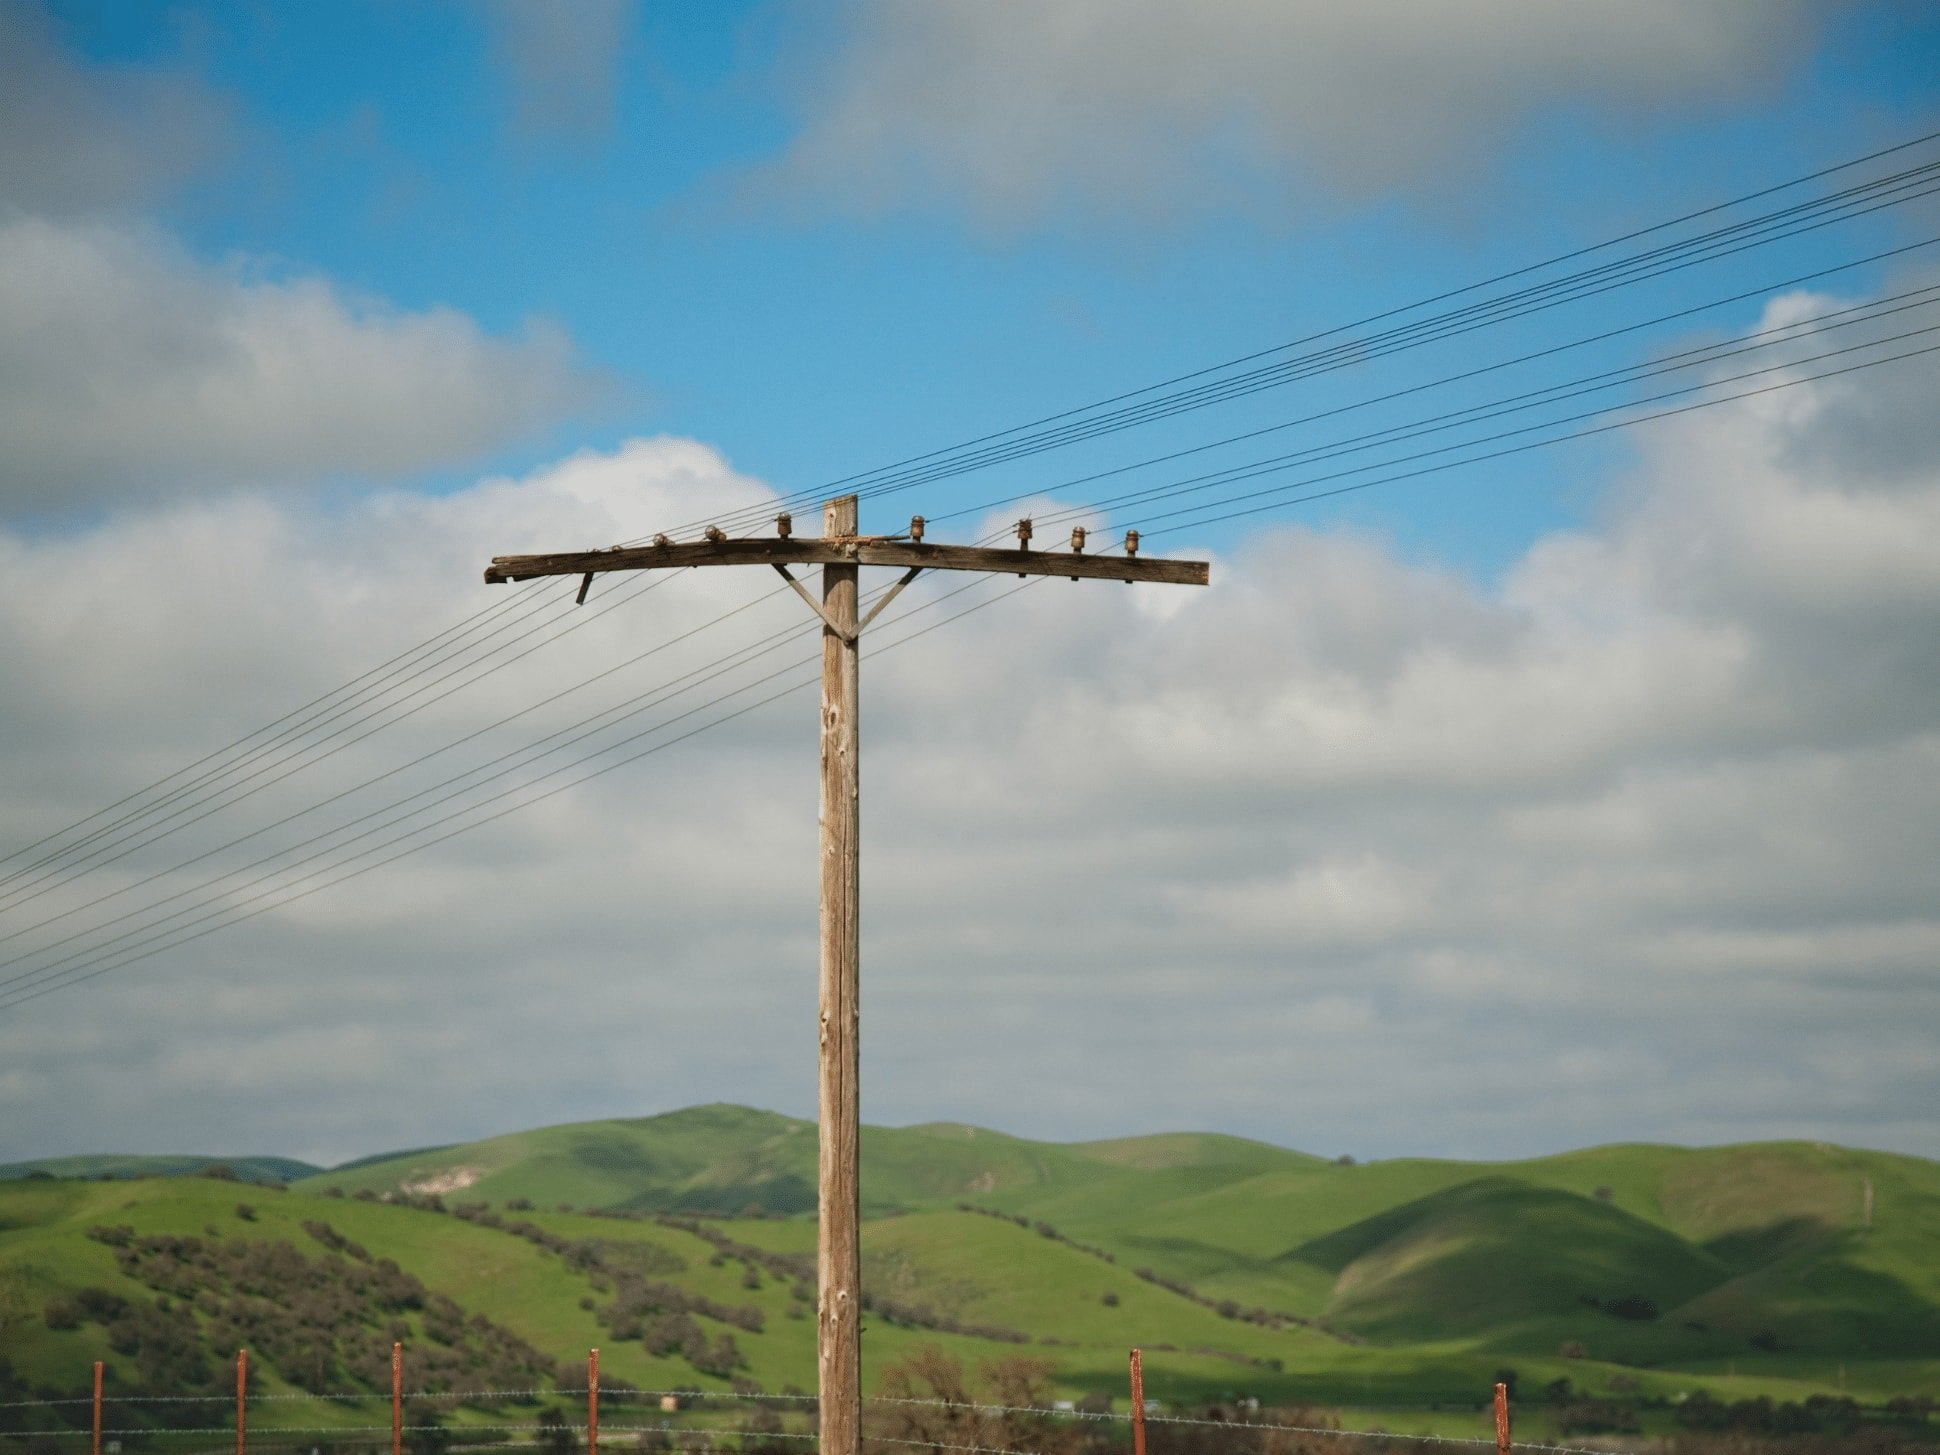 Lowe Maintenance Fell Utility Poles training courses in North Yorkshire